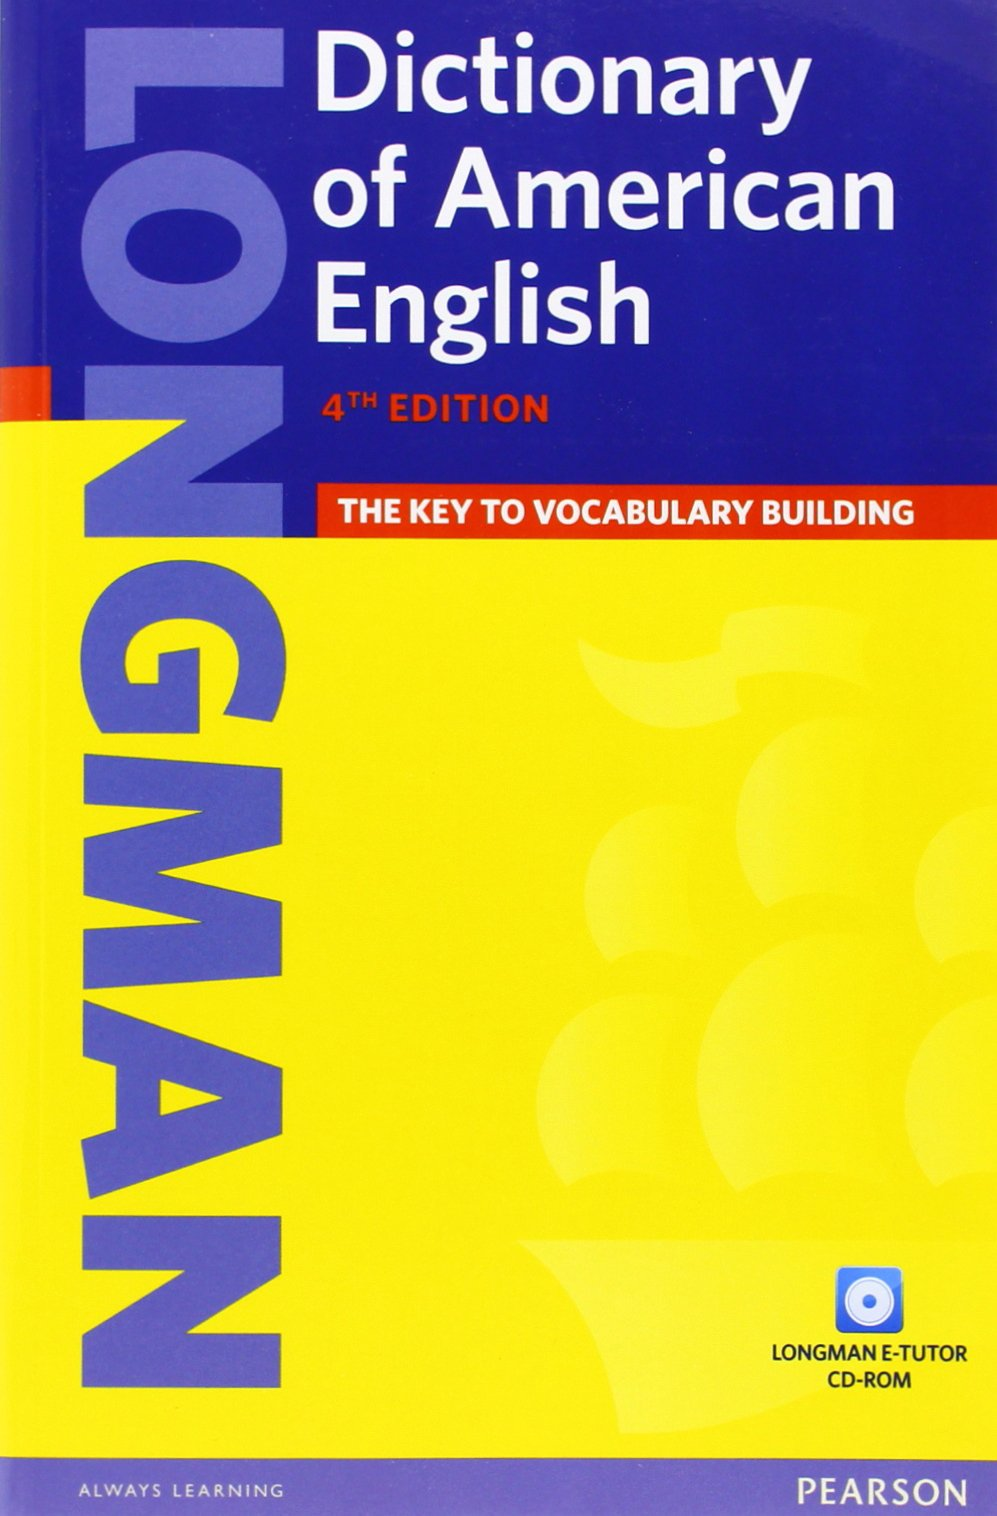 Buy Longman Dictionary of American English, 4th Edition (paperback with CD-ROM)  Book Online at Low Prices in India | Longman Dictionary of American English,  ...